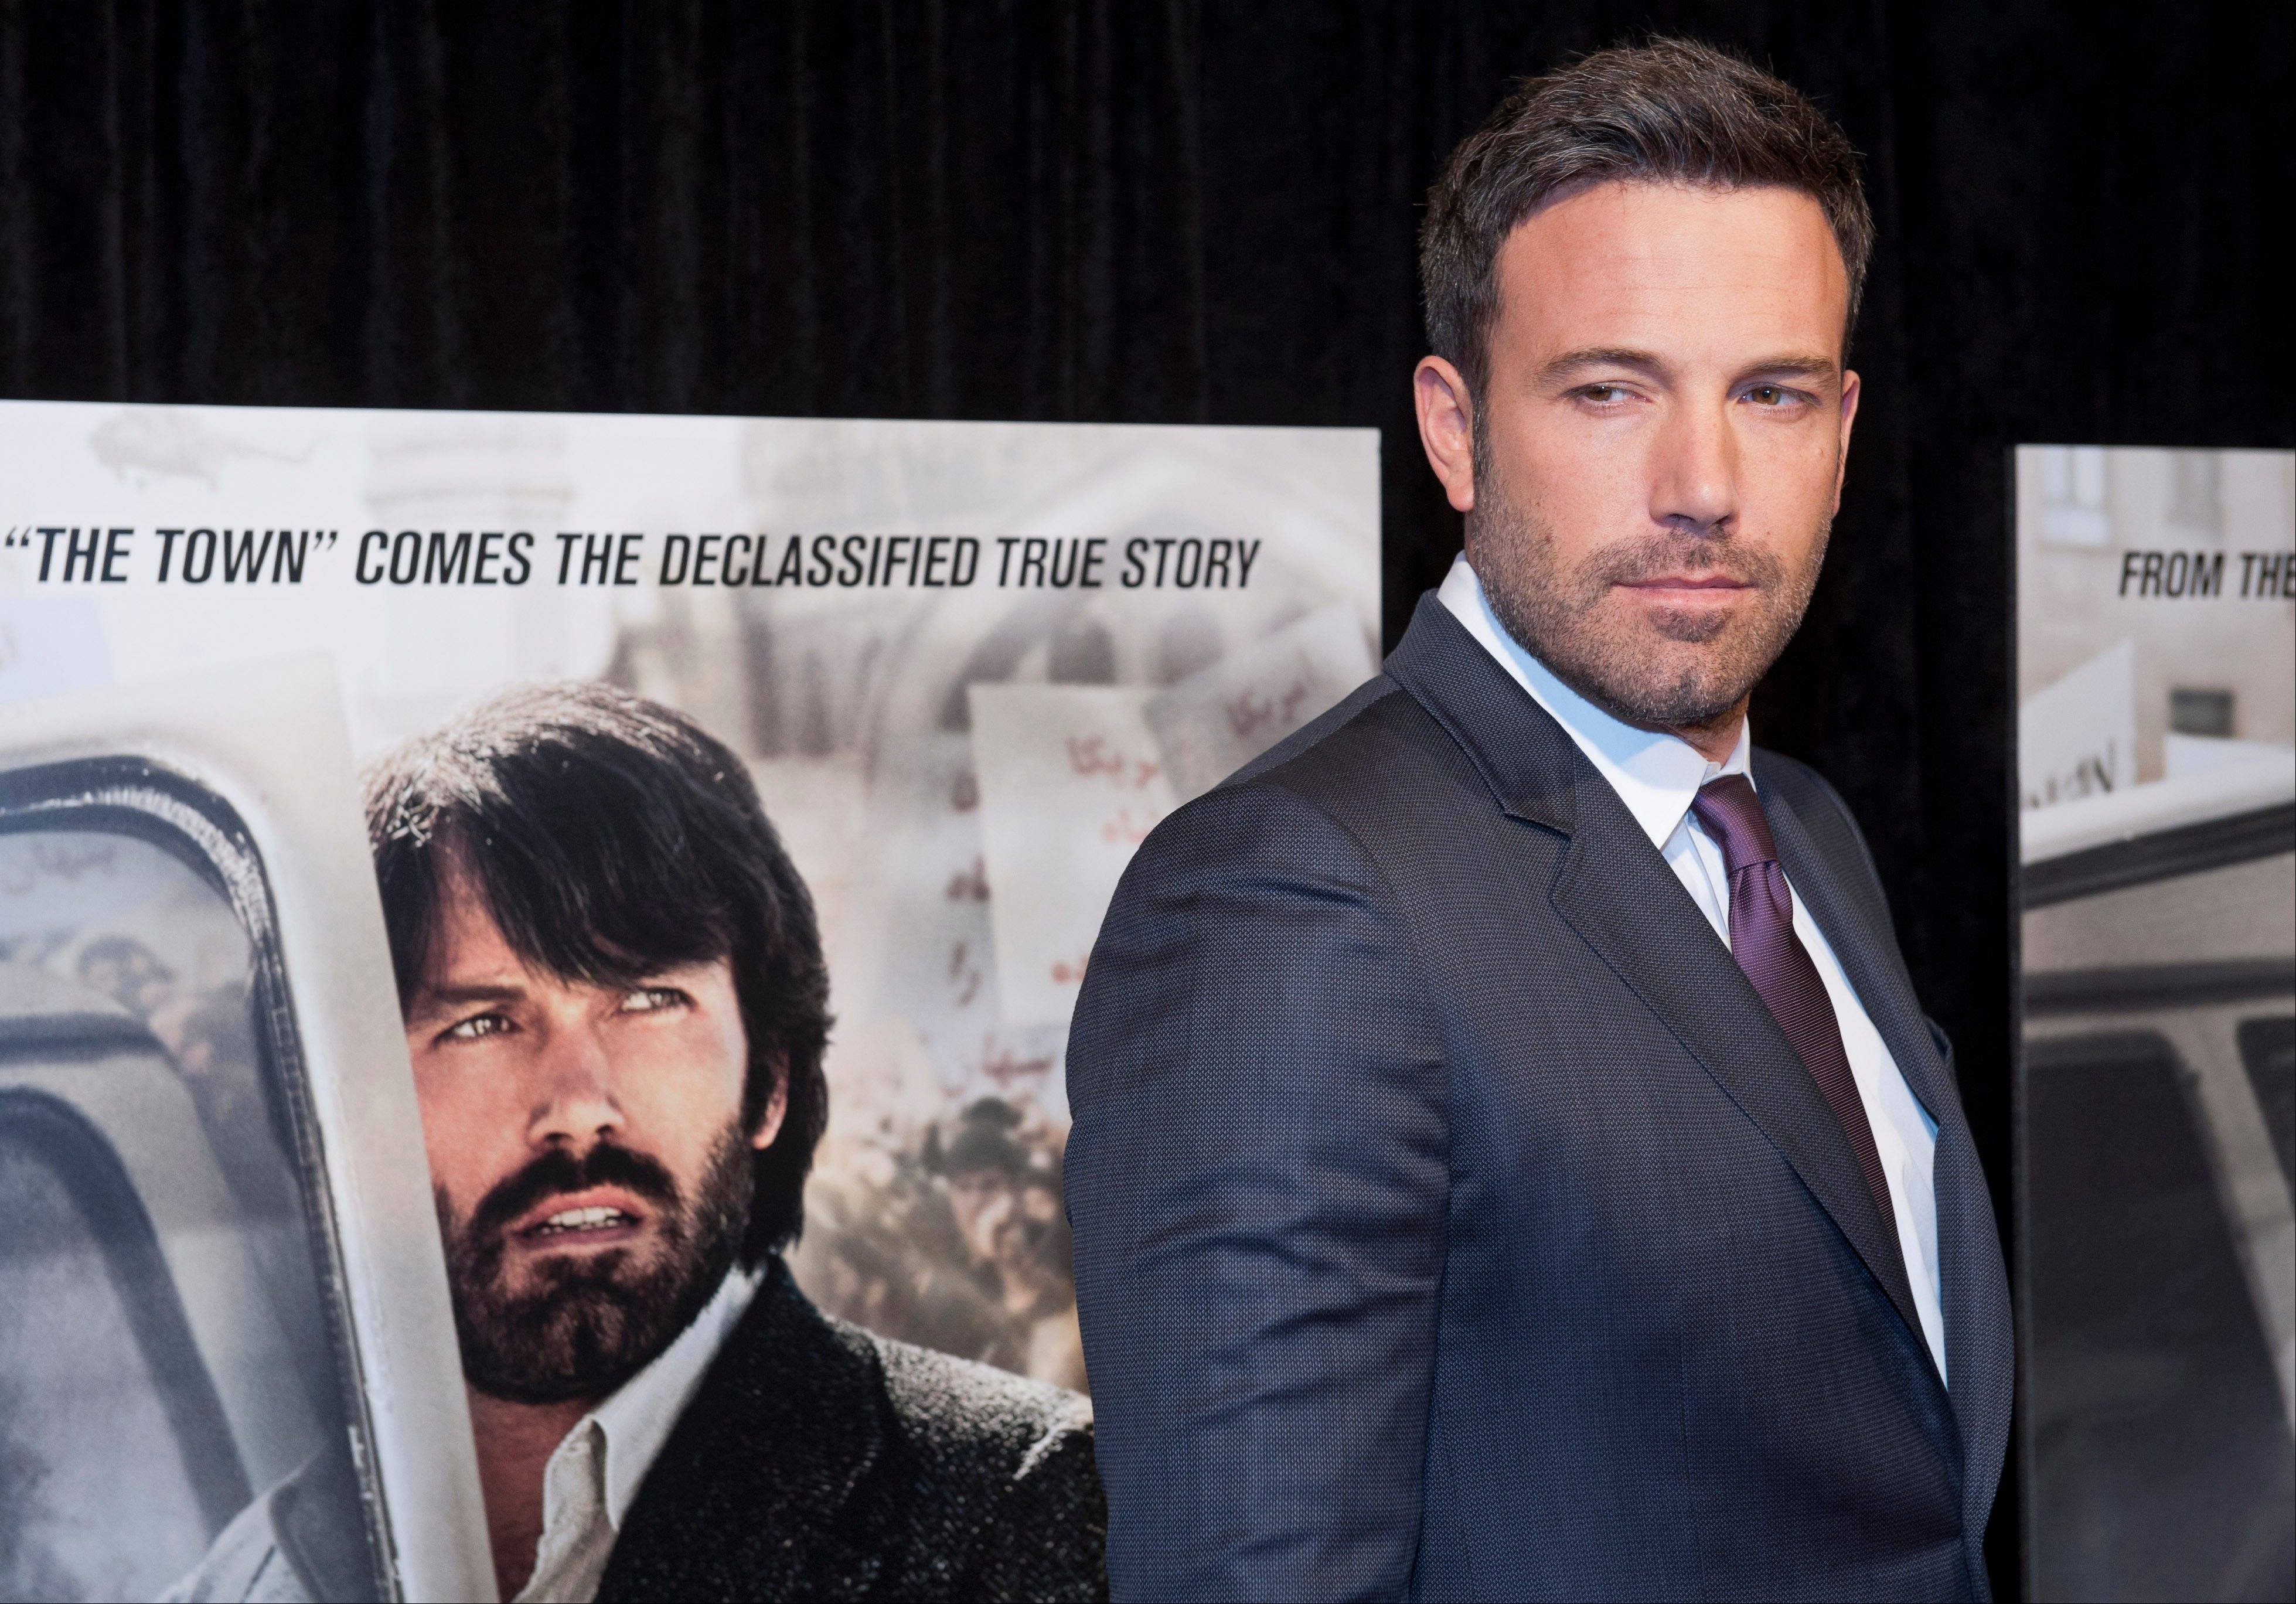 Ben Affleck, who won the Academy Award earlier this year for best picture as producer of �Argo,� will play Batman in a film that pairs him with Henry Cavill�s Superman.